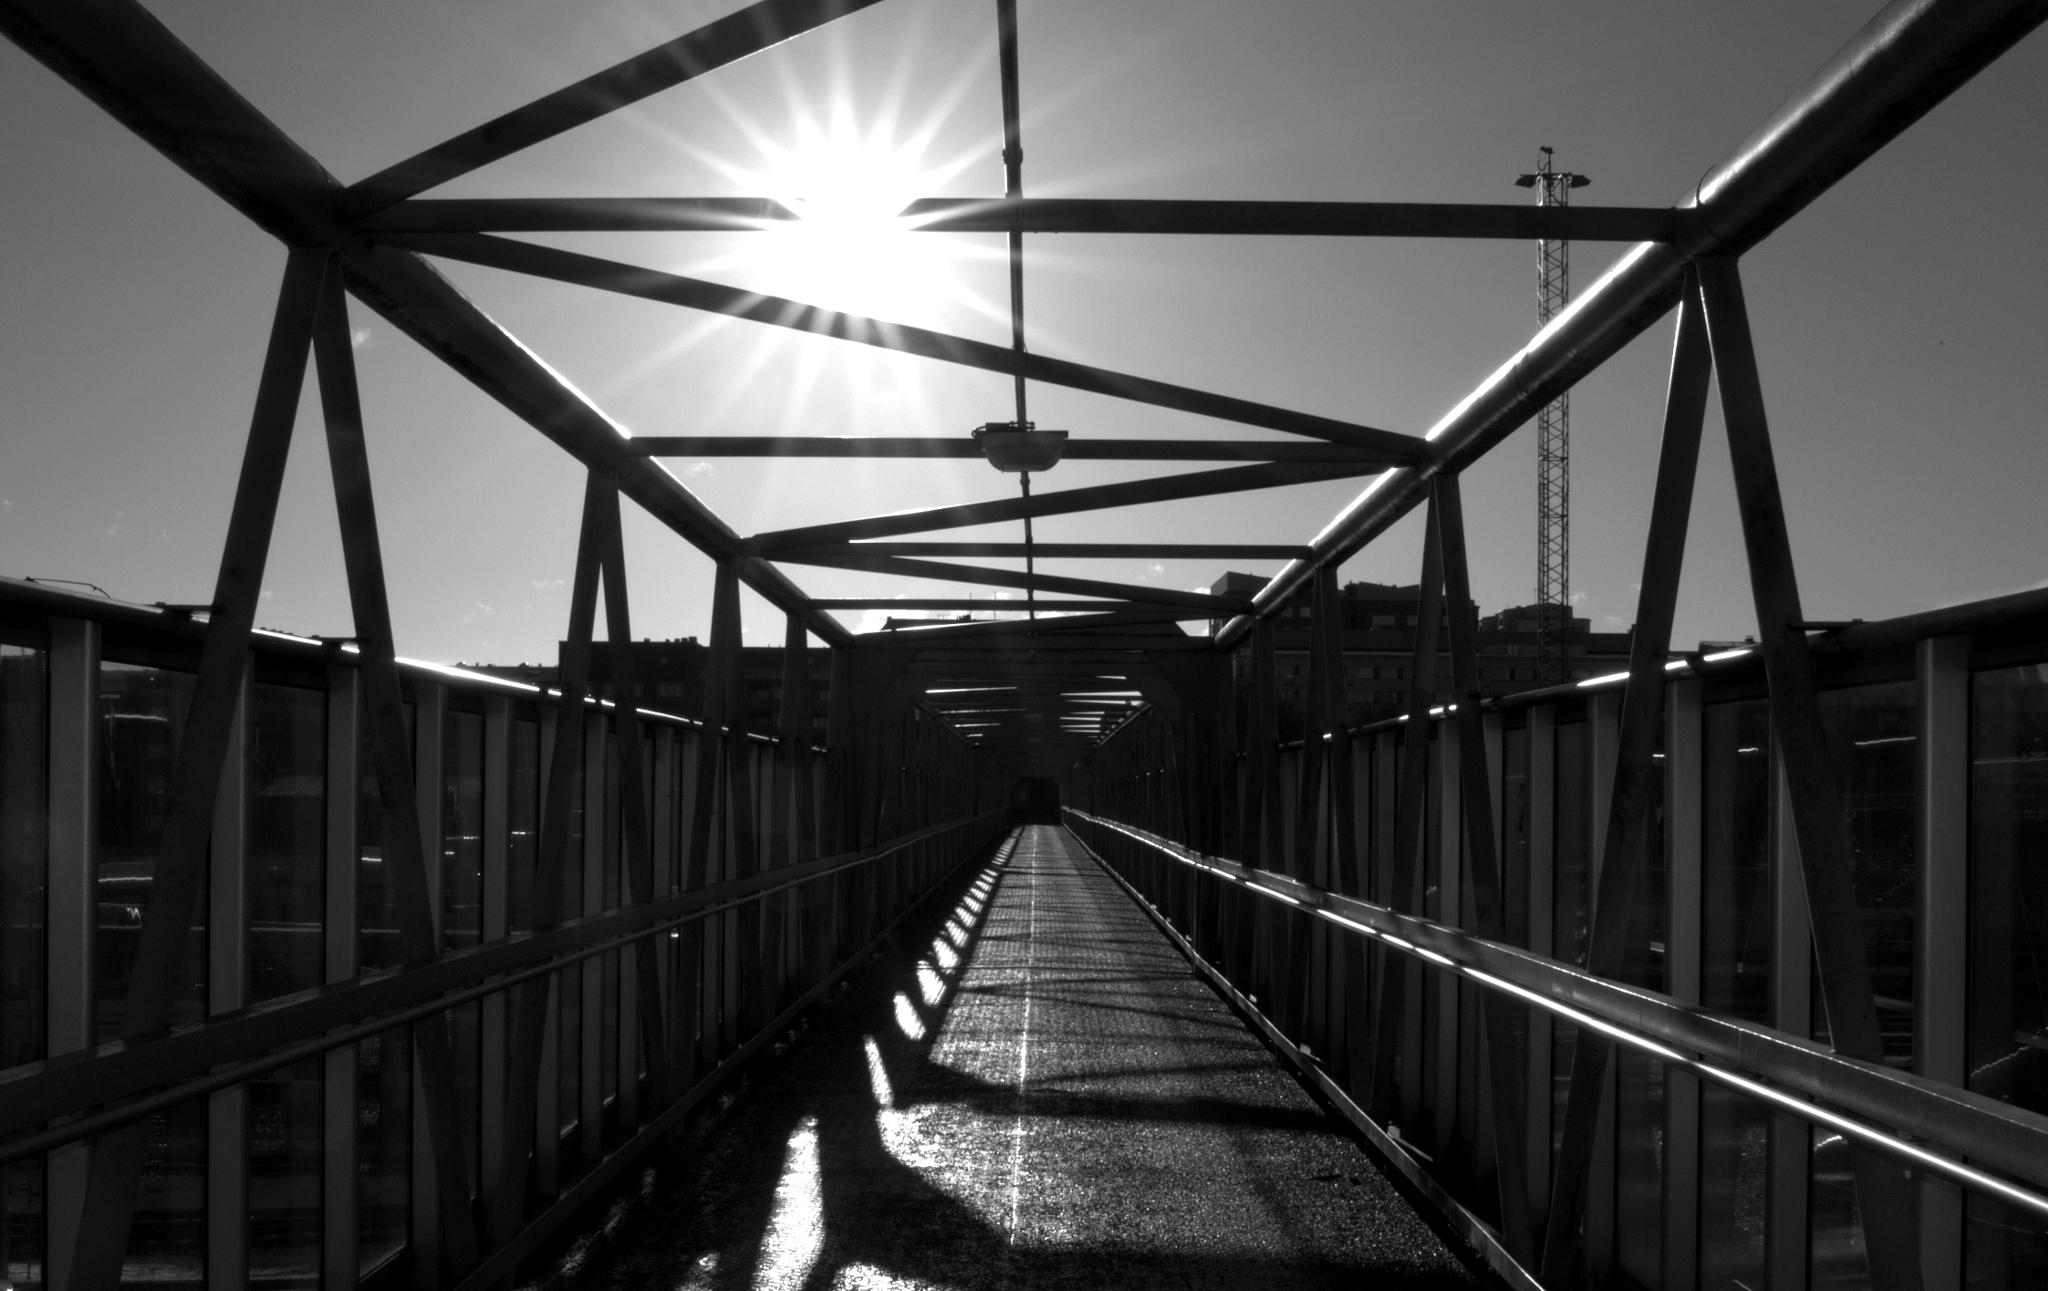 Sunny structure by Mkorho